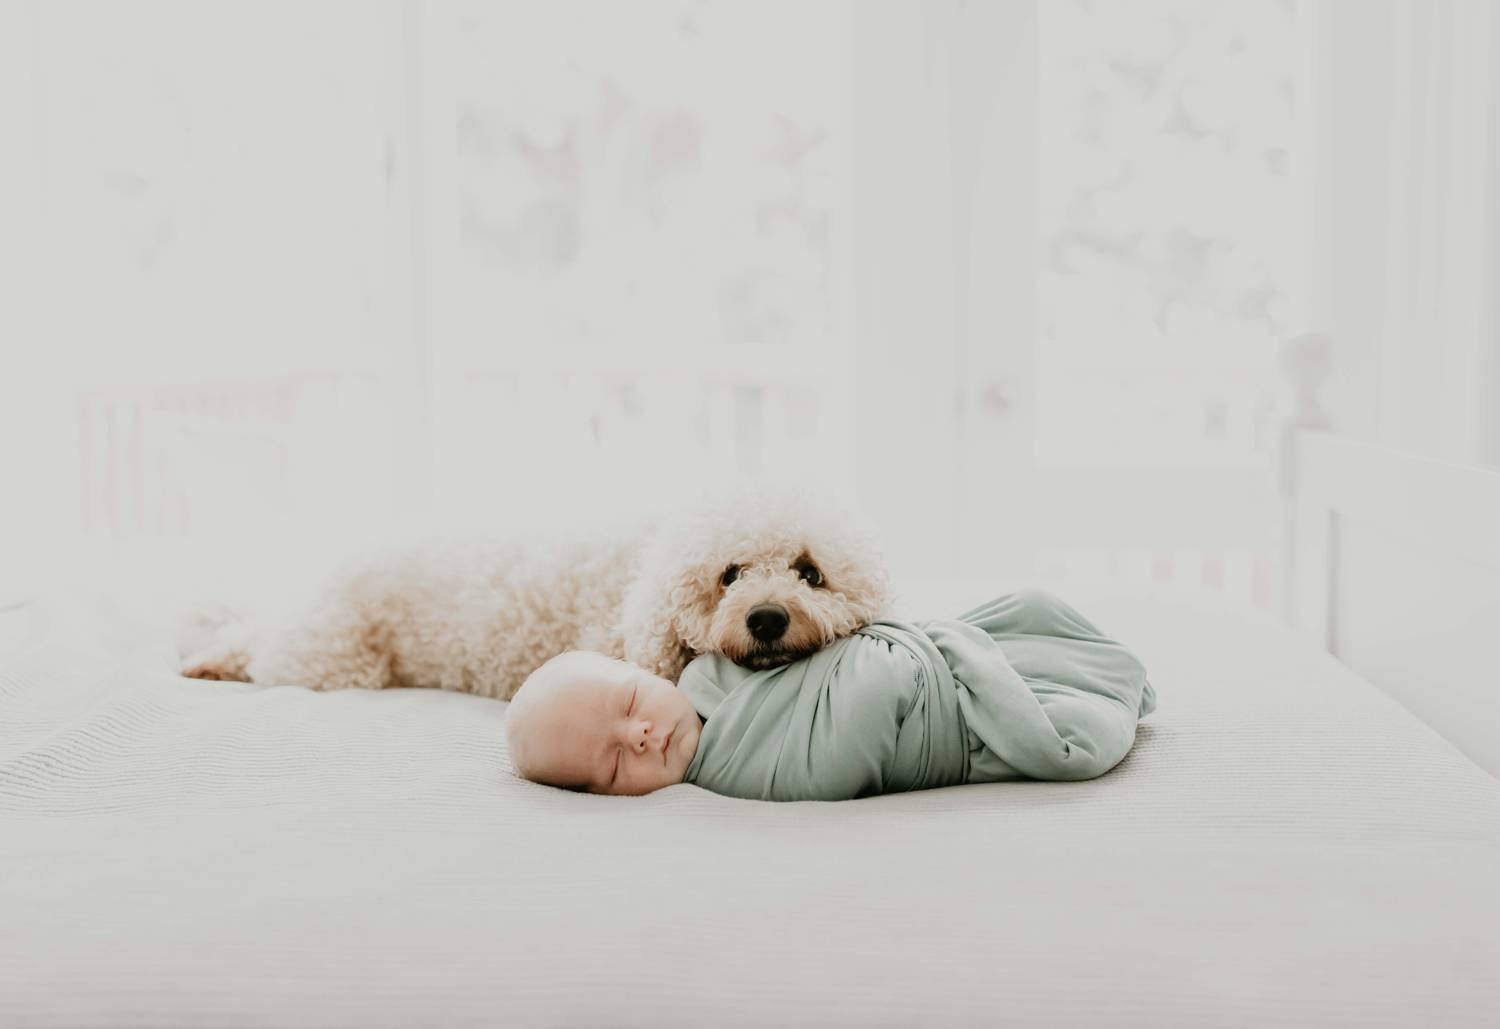 Photo: Shefali Parekh's simple, muted portrait of a newborn baby swaddled in a seafoam green cloth as a white fluffy dog rests it's head on the baby's belly.